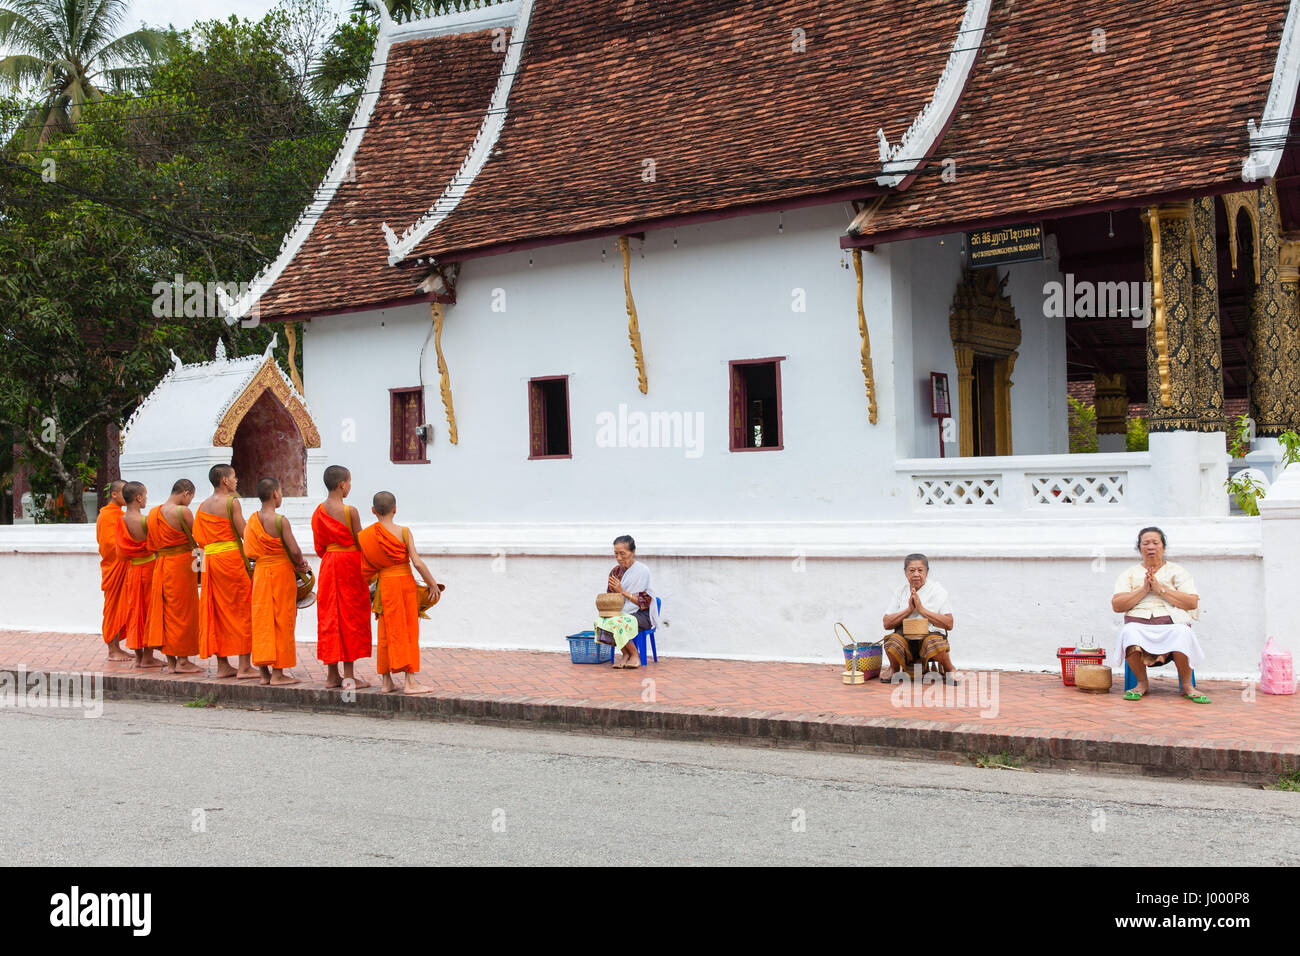 Lao People's Democratic Republic, Laos, Luang Prabang - 22 JUNE 2014: Woman prays after giving alms to buddhist Stock Photo